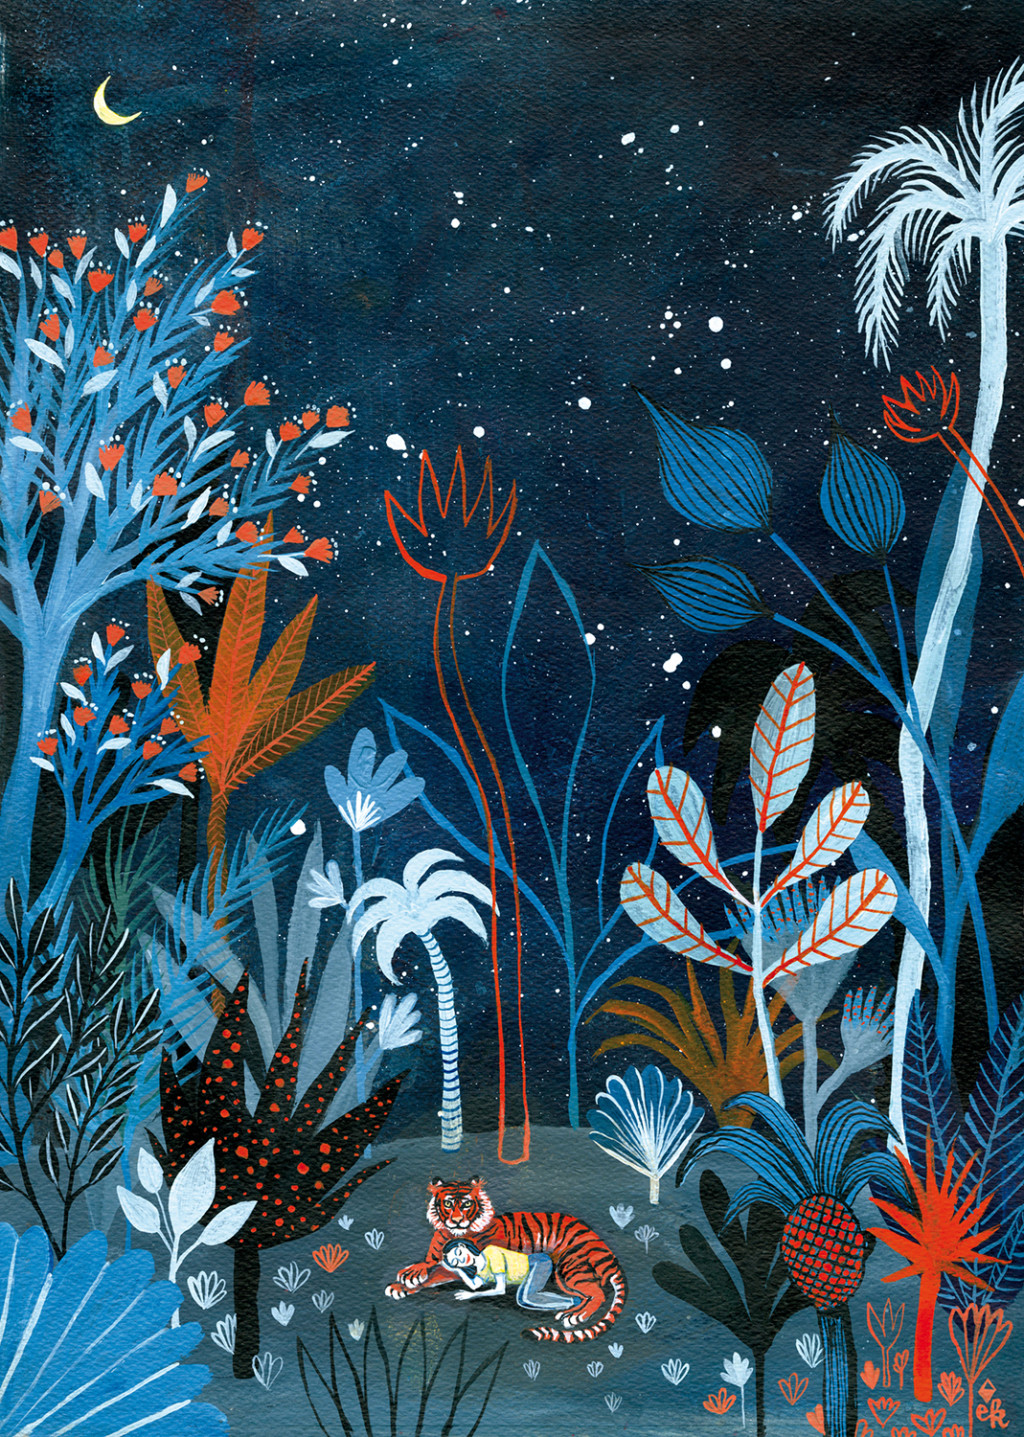 Elsa Klever Illustration World Illustration Awards